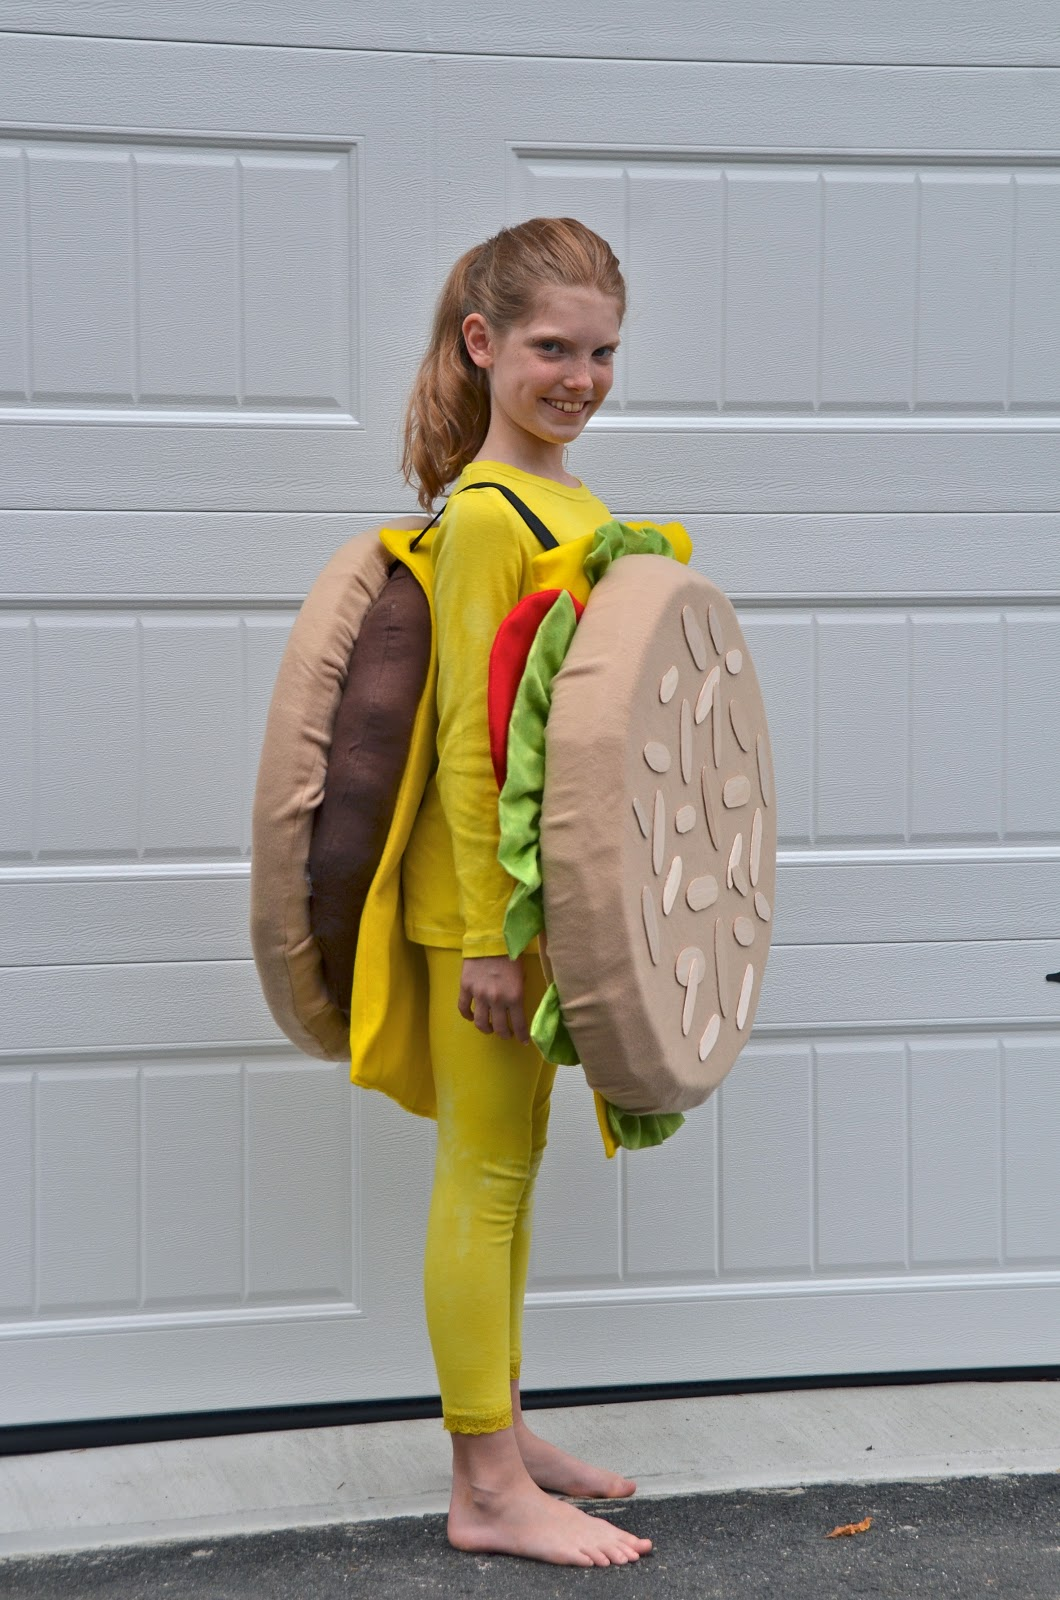 we had a little bit of a hard time coming up with costume ideas this year once grace decided to be a hamburger we brainstormed ideas for harris hotdog